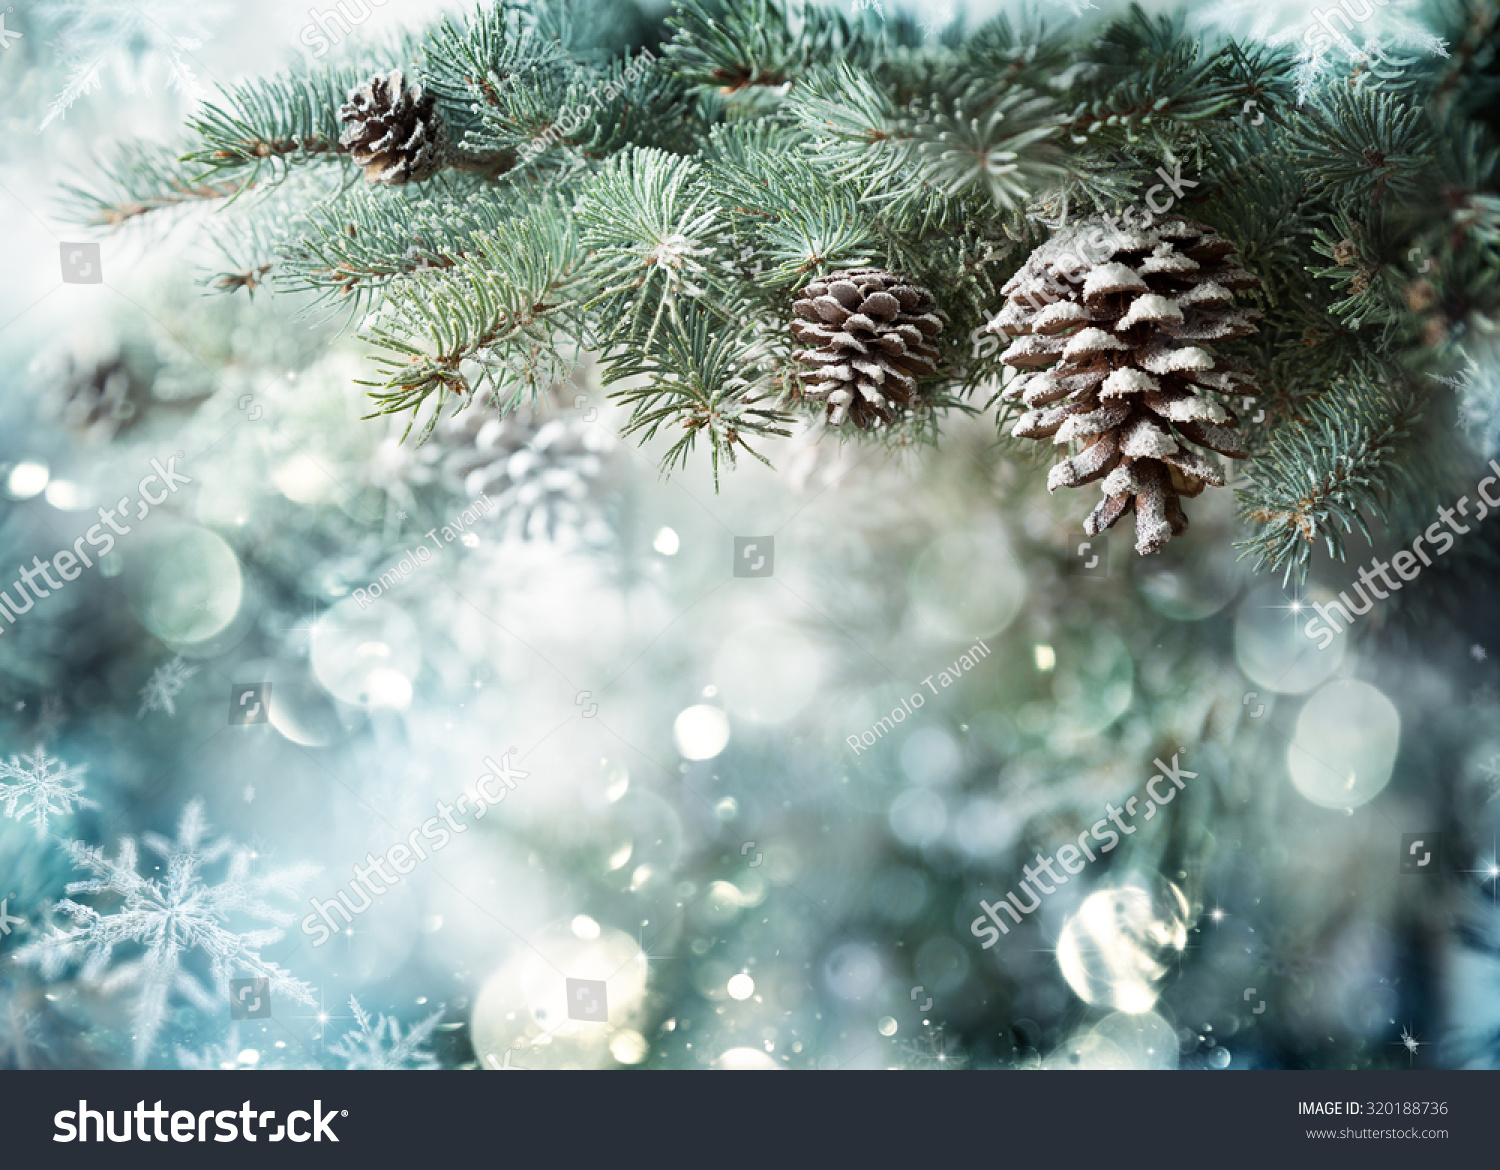 Fir Branch With Pine Cone And Snow Flakes Christmas